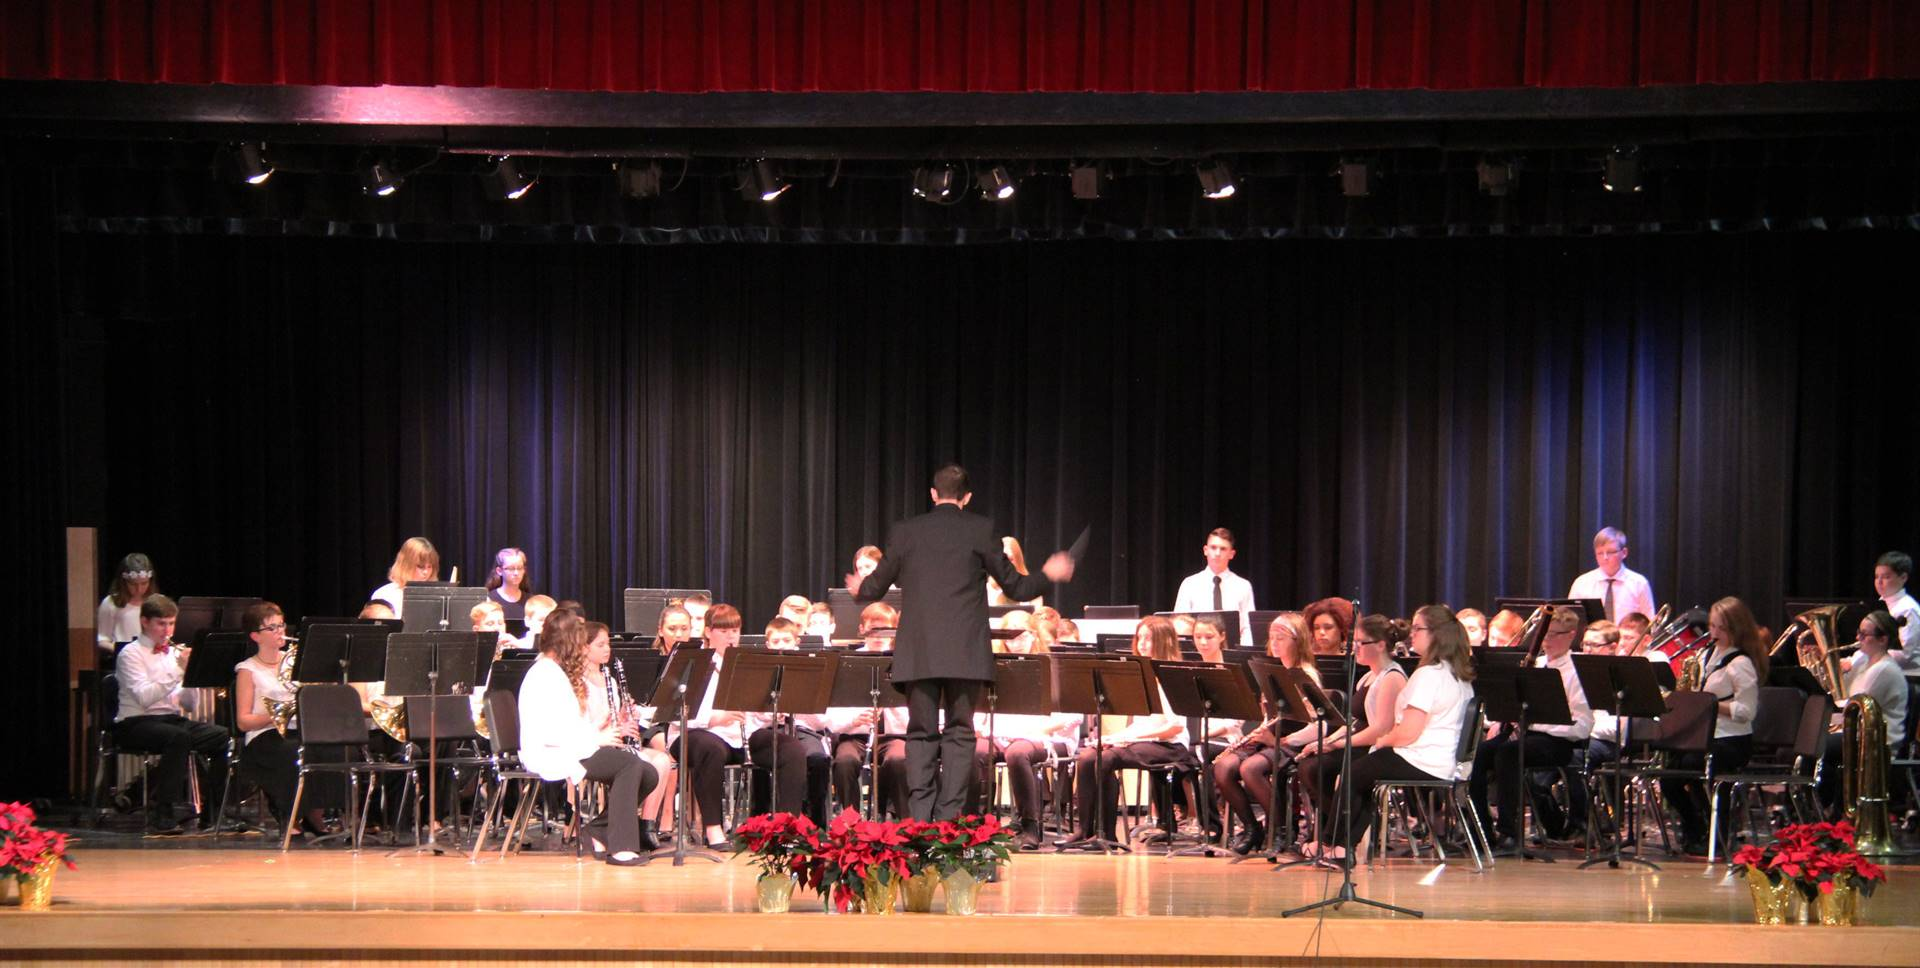 seventh and eighth grade band performing on stage